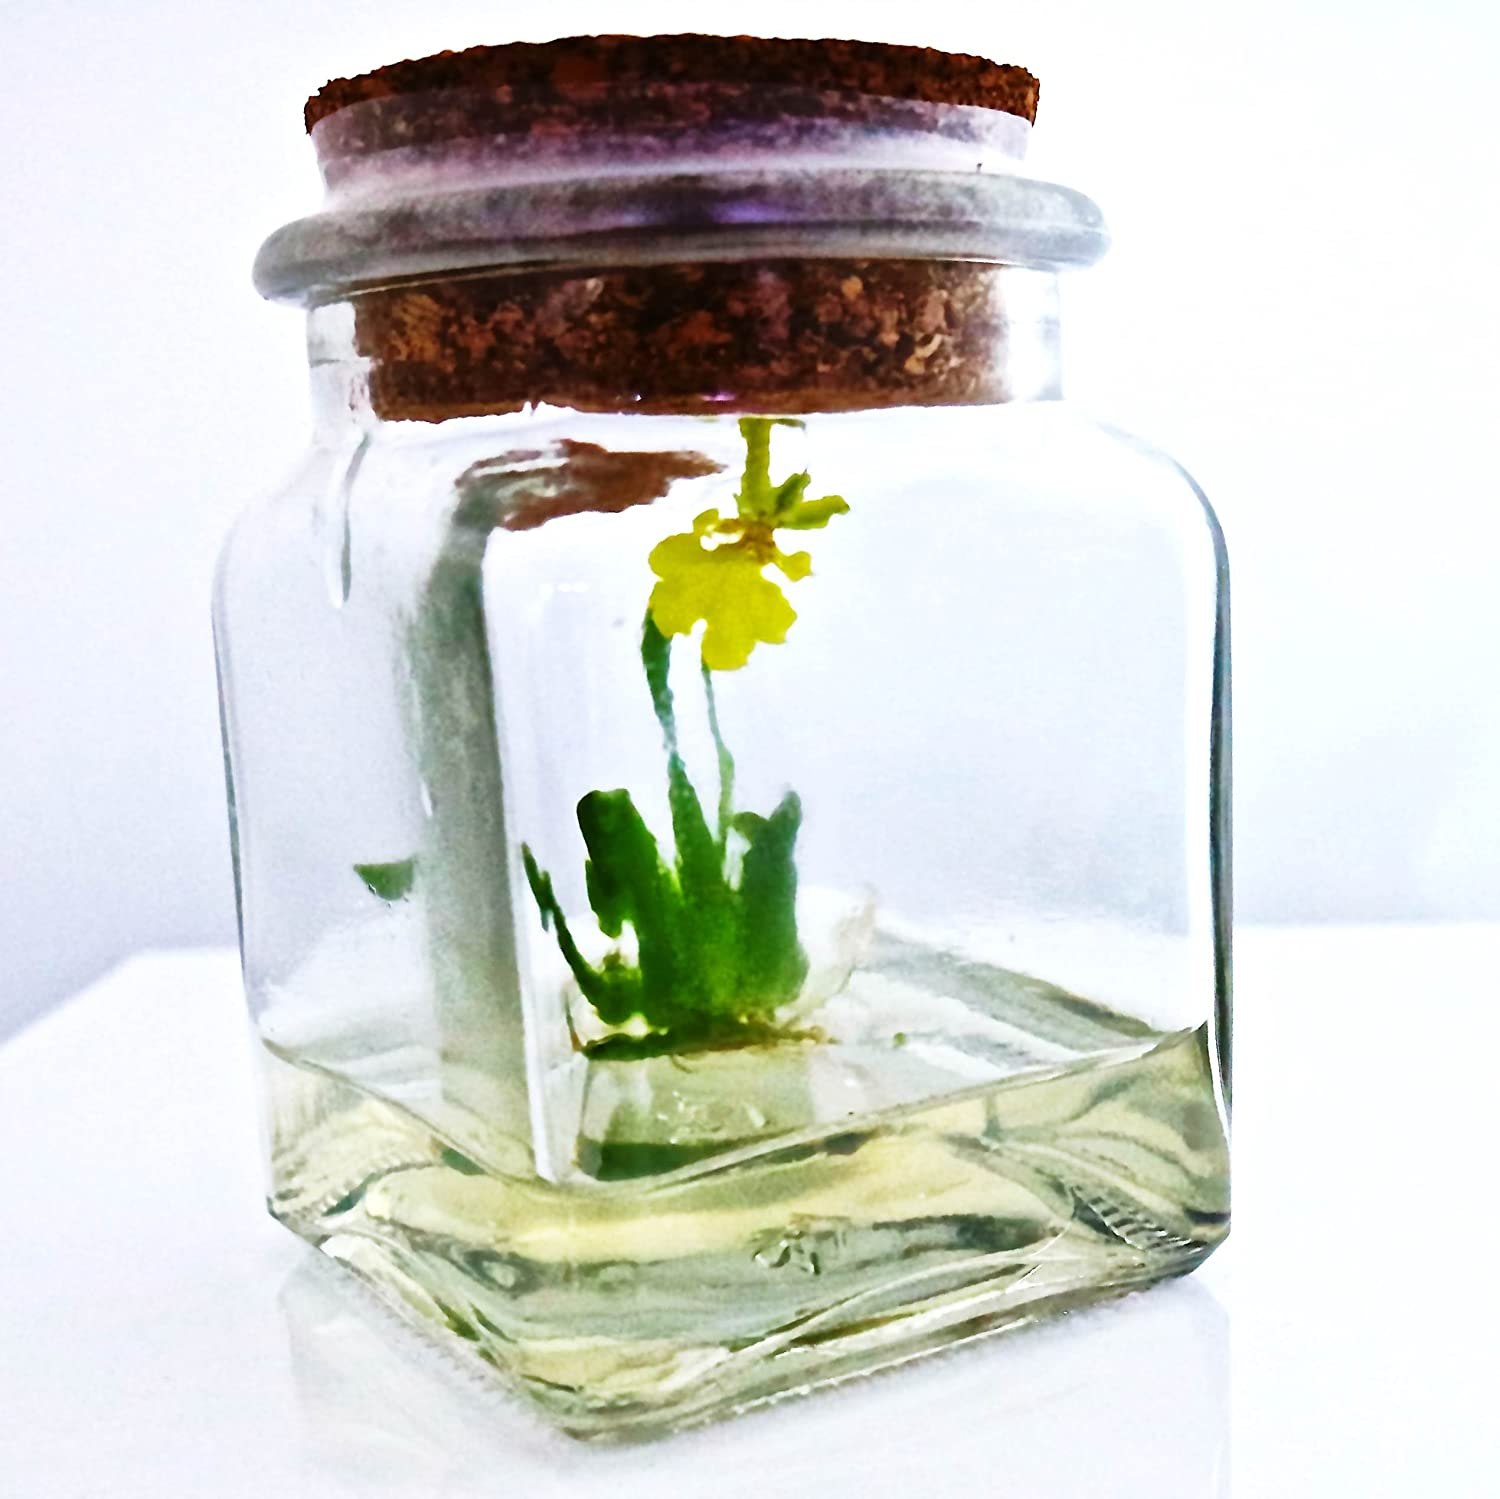 Amazon : Award Winning, Maintenance Free Orchid Terrarium  Psygmorchis  Pusilla  Miniature, No Green Thumb Necessary, Great For Work, Home,